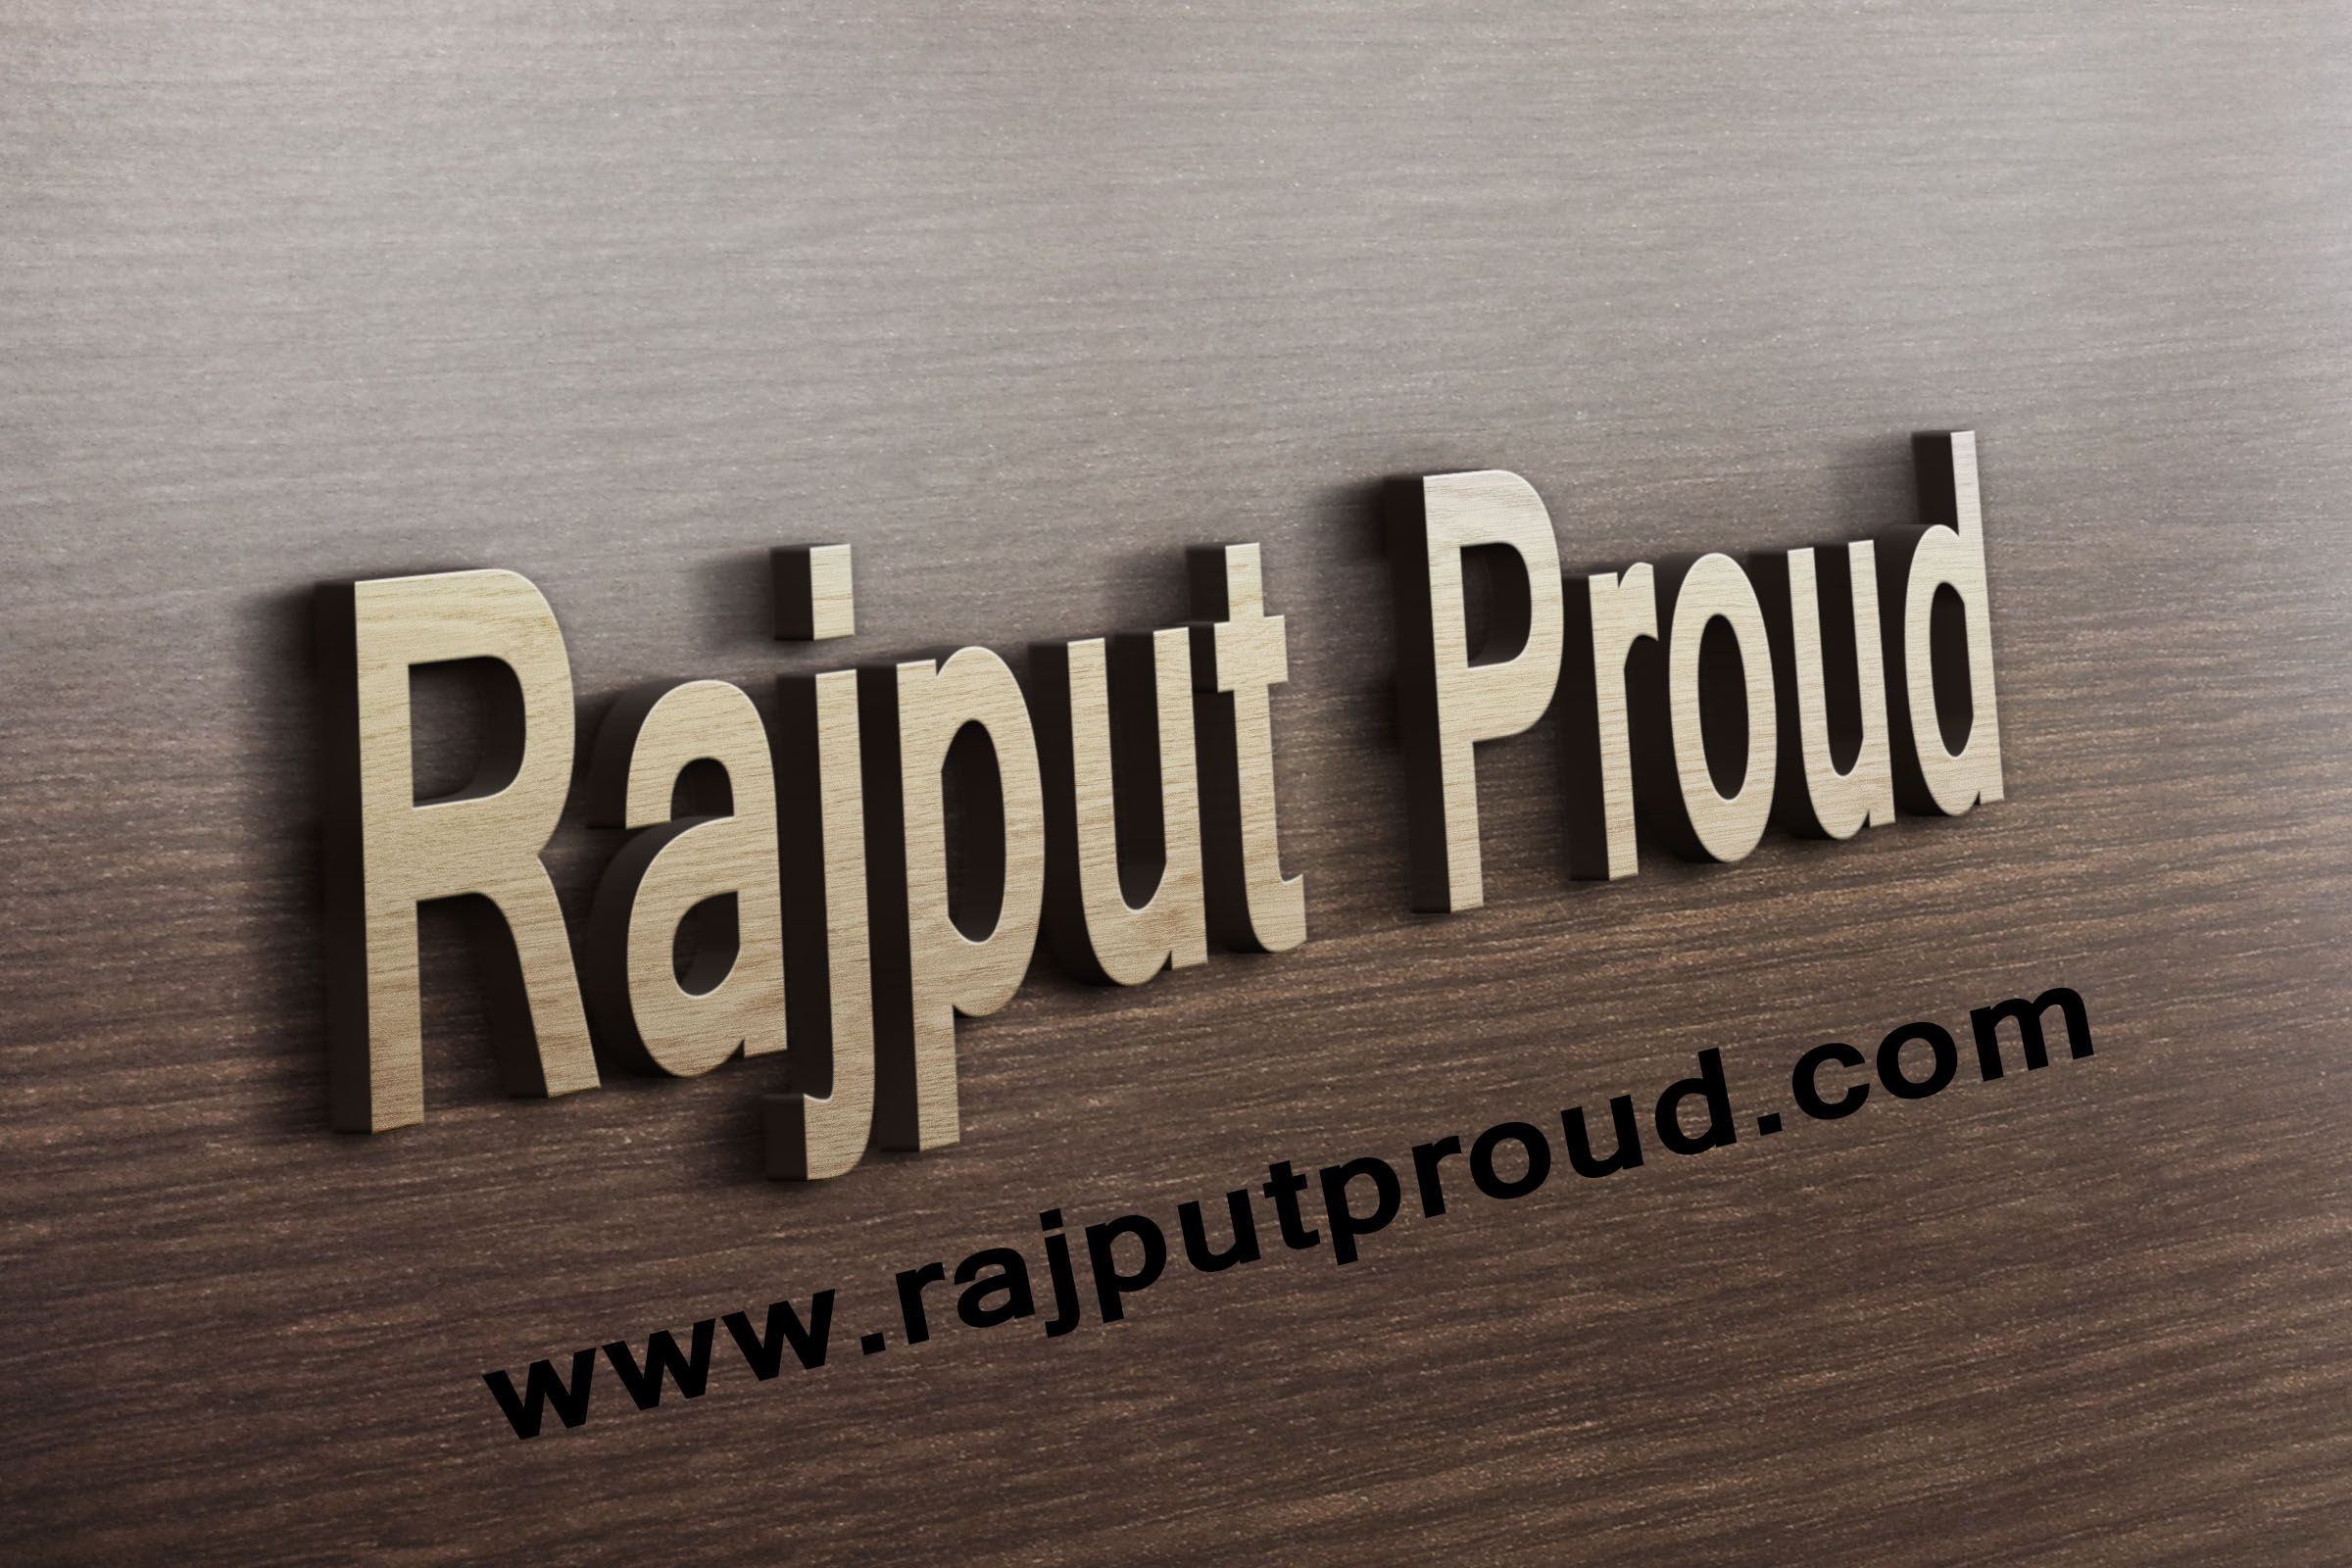 Popular Wallpaper Name Rajput - 7b3609345b25df400d0c7f82b37729cd  Graphic_259951.jpg